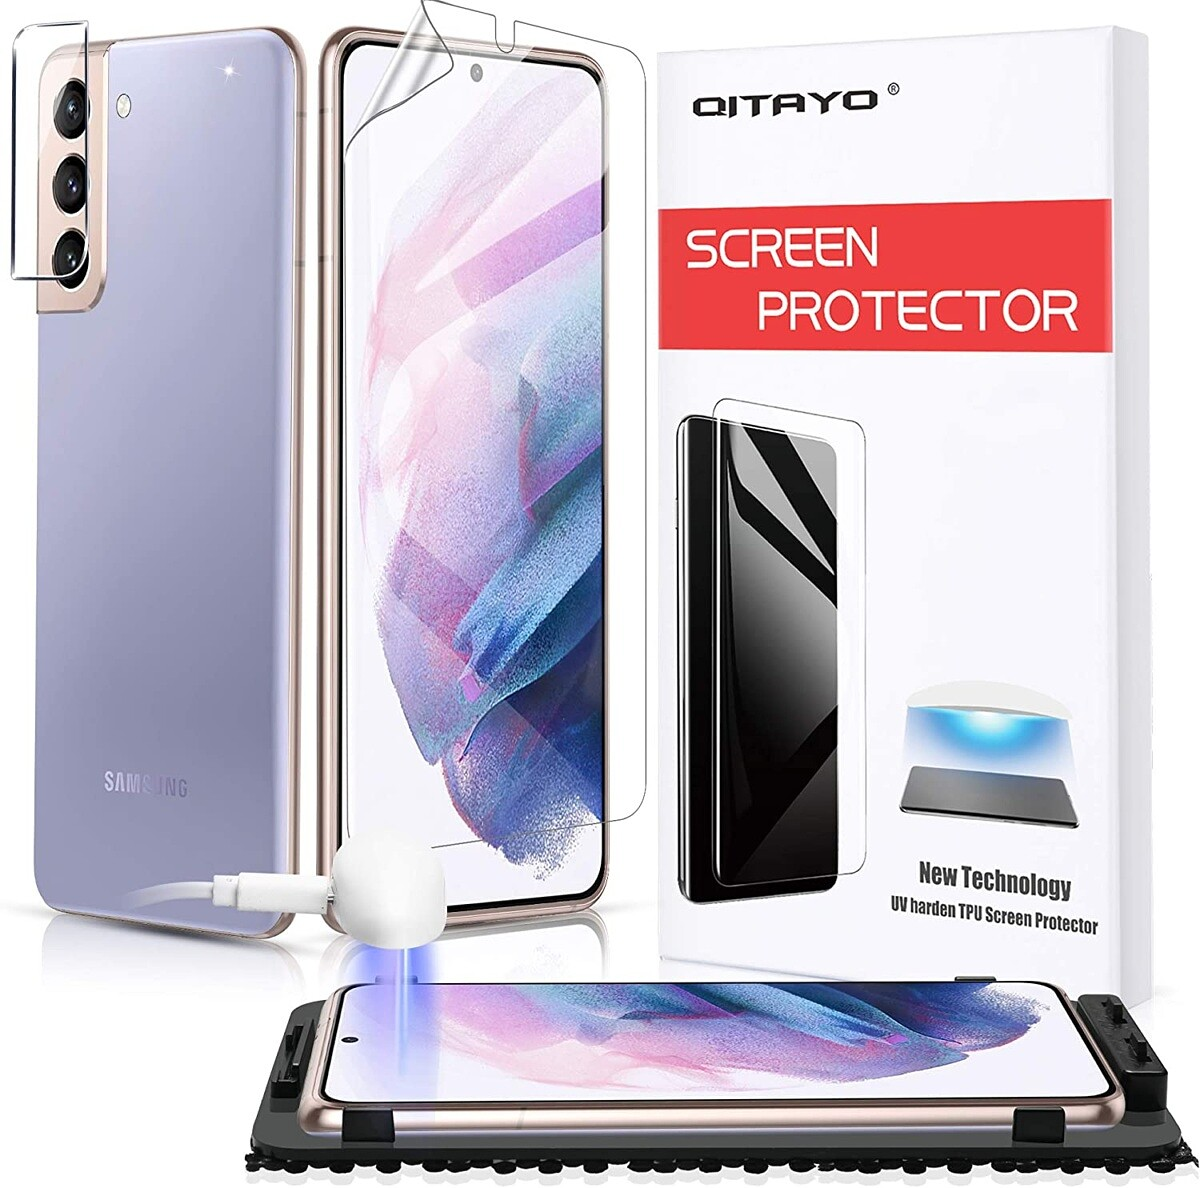 QITAYO Galaxy S21 Plus Screen Protector